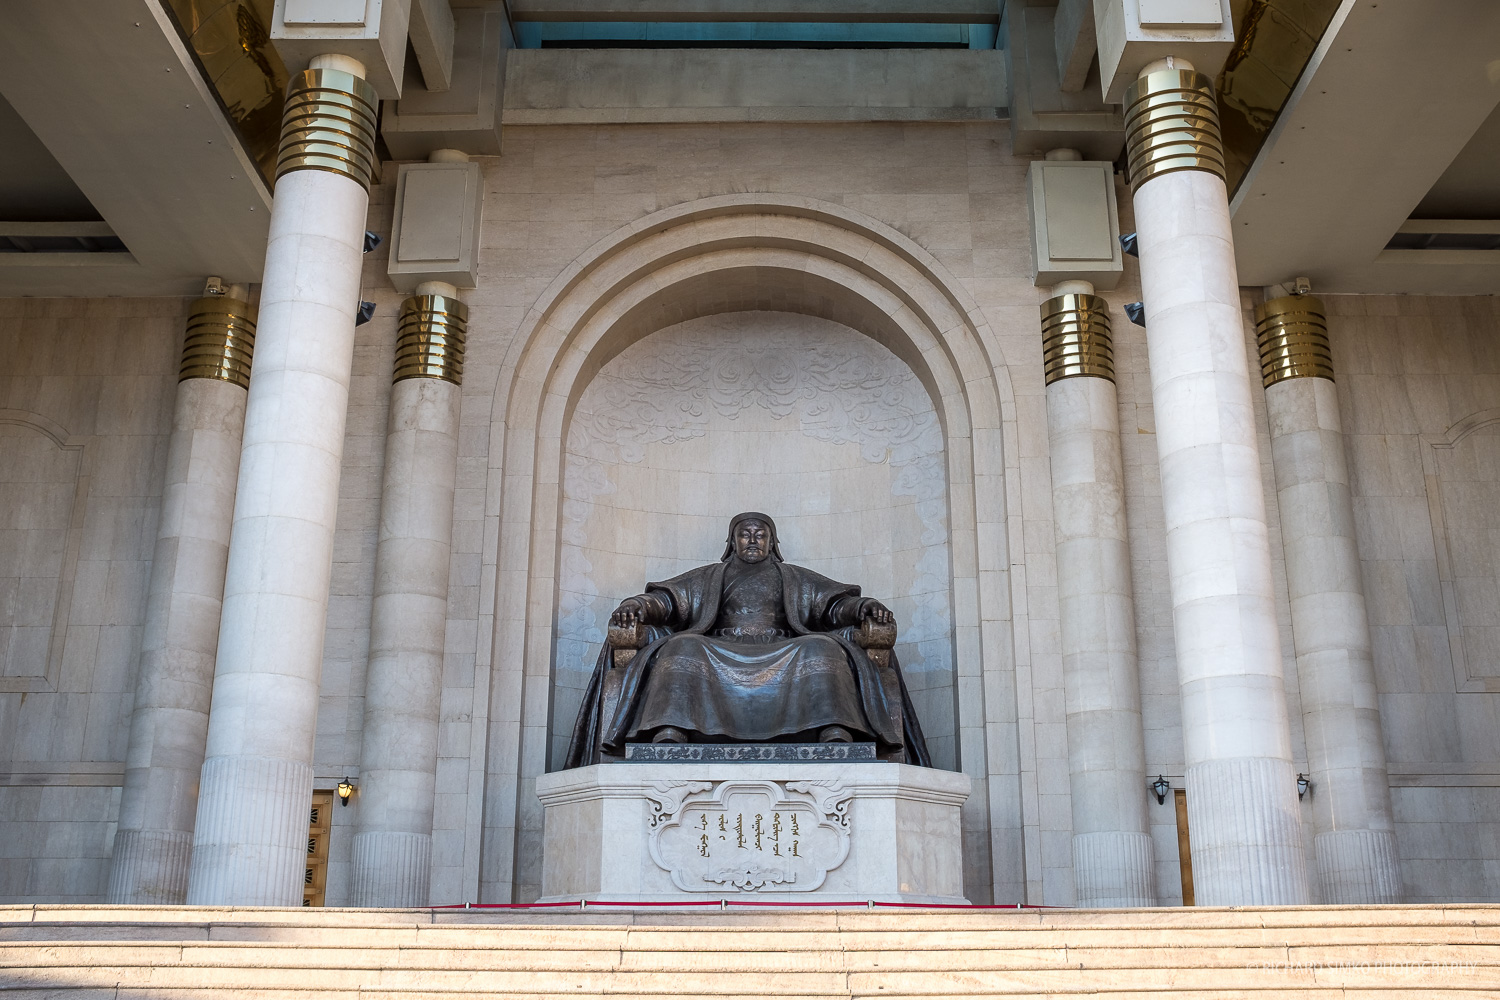 Bronze statue of Chinggis Khaan in the center of the complex.